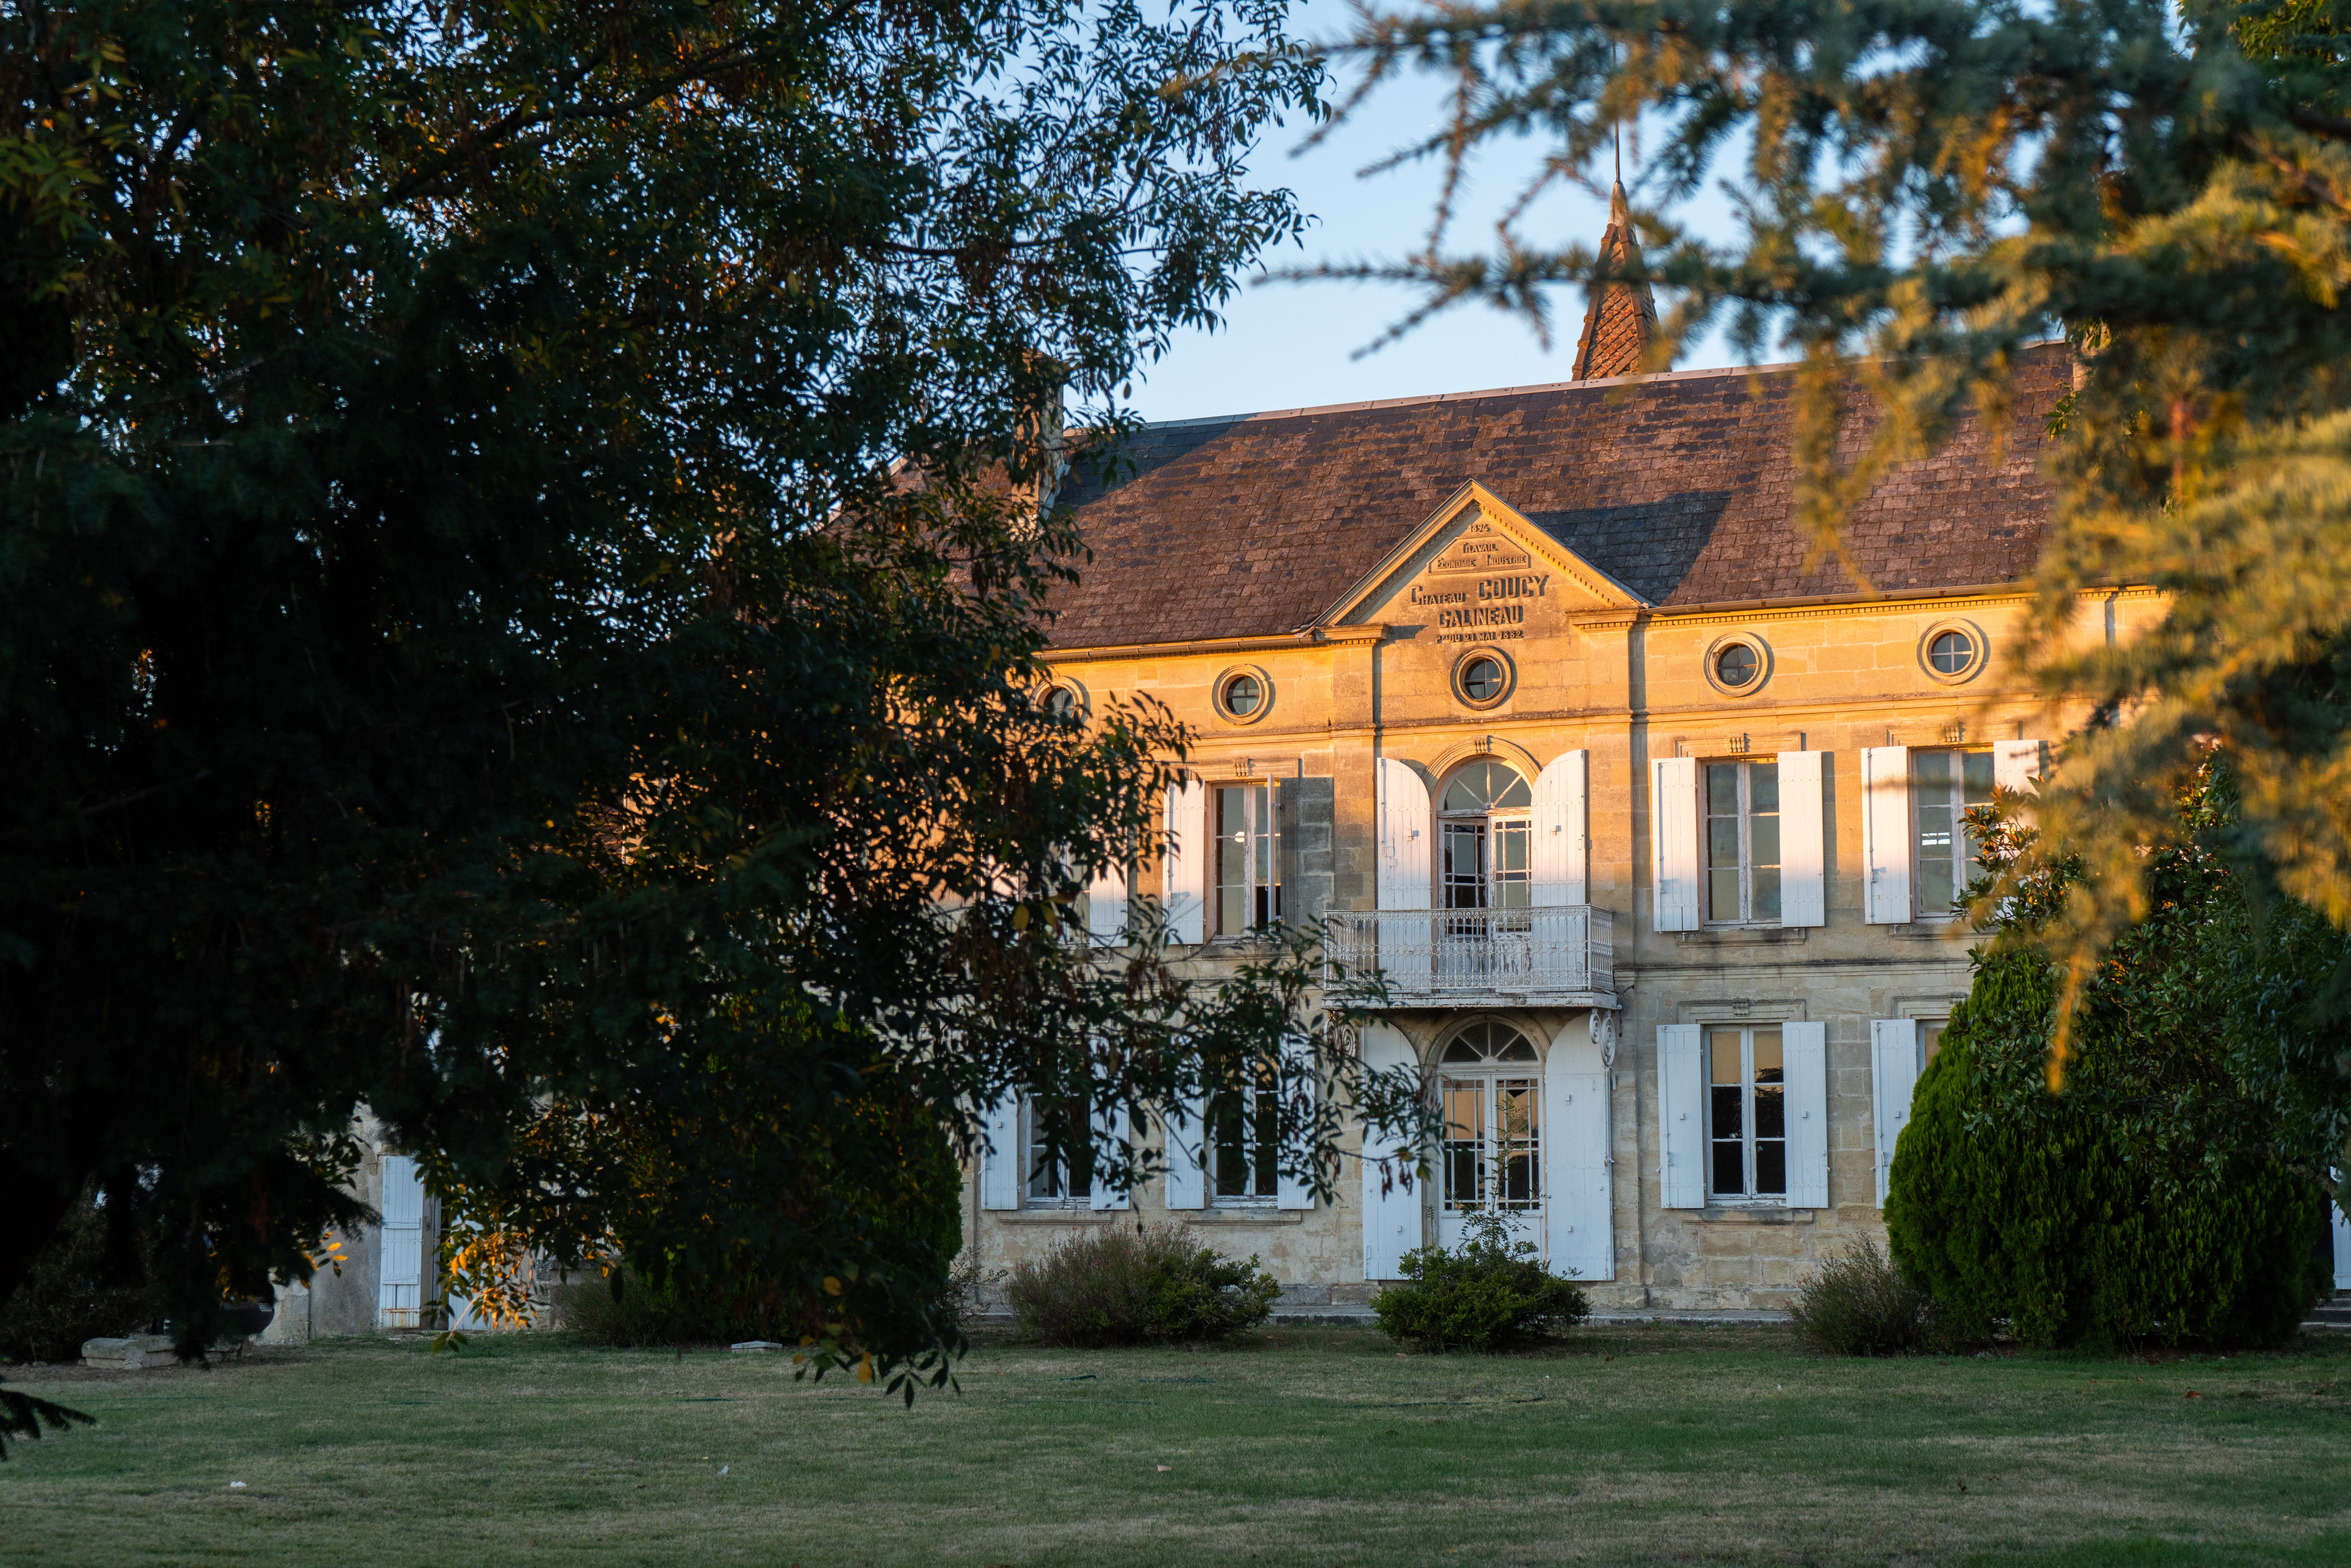 image-prop-contact-sas-galande-associes-chateau-coucy